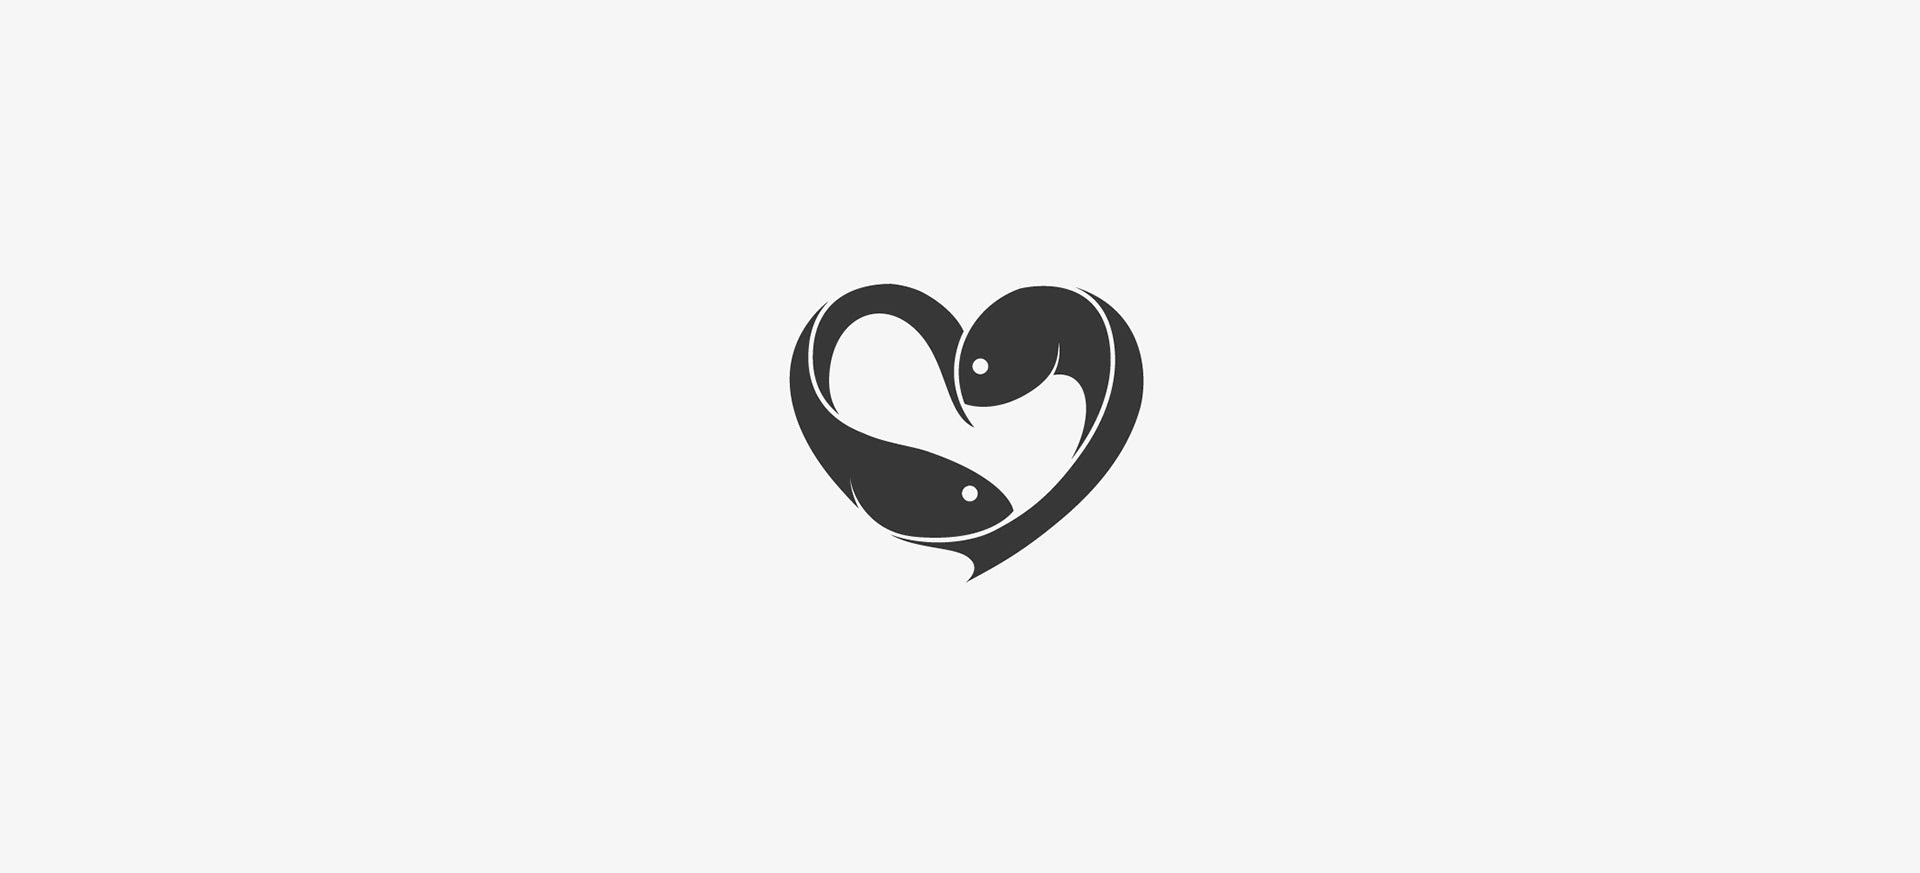 Kaan beyhan identities an emblem design to emphasize the value of omega 3 6 for heart health after the company was acquired the icons usage unfortunately dead biocorpaavc